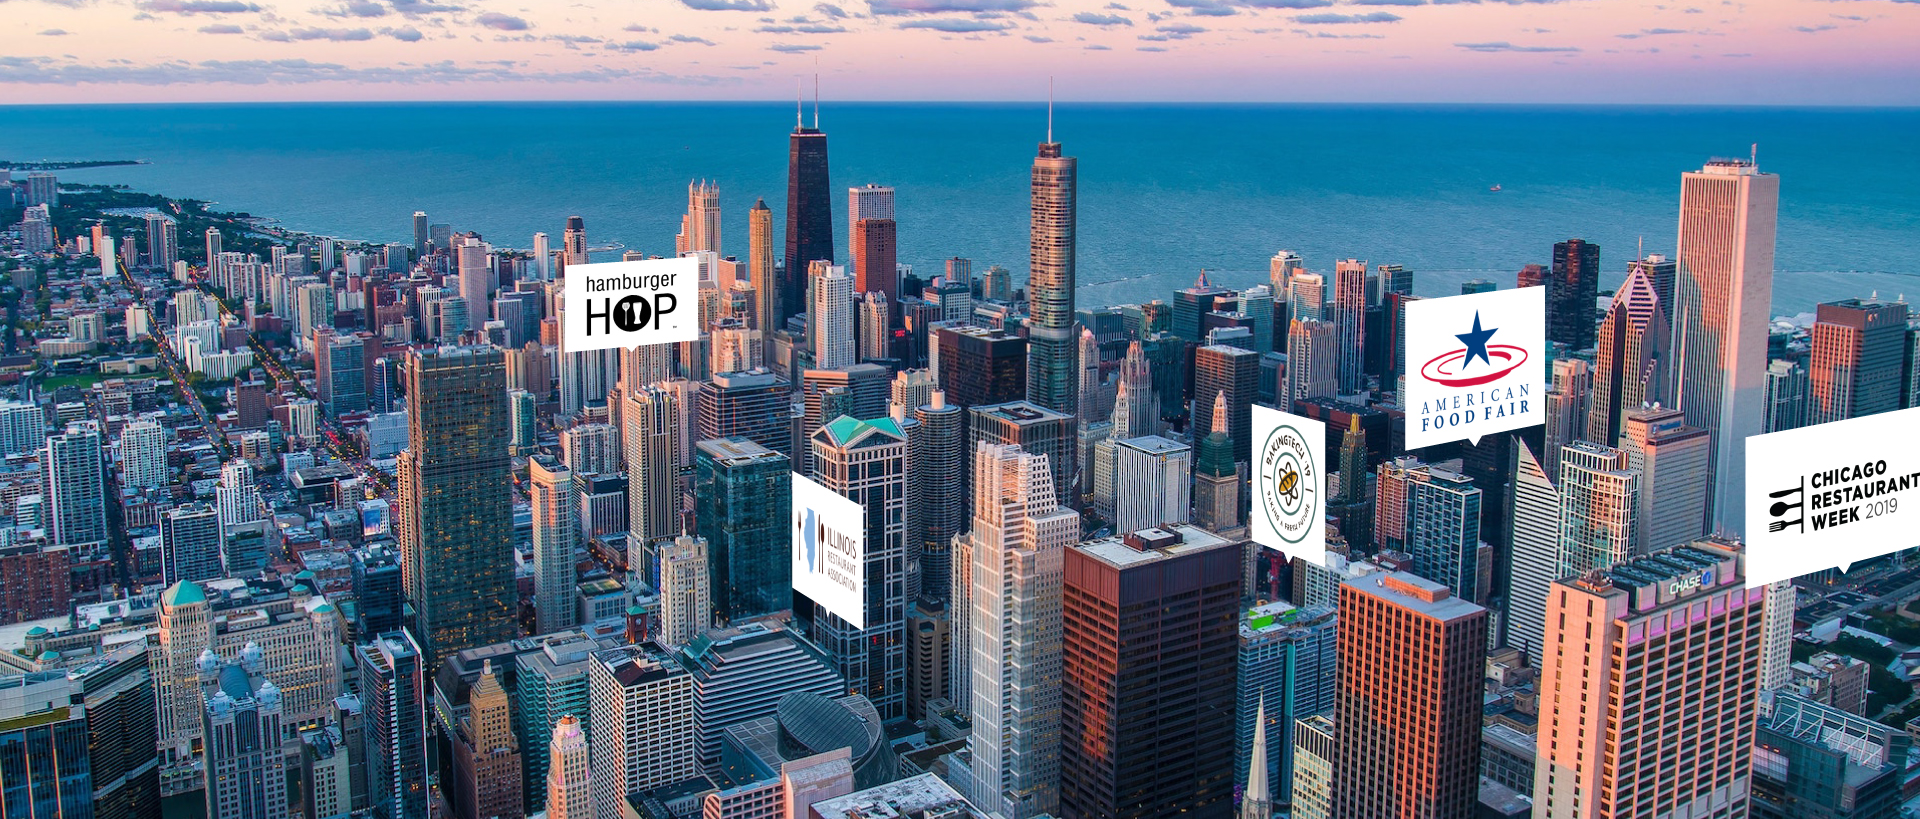 Top Chicago Restaurant Events for 2019